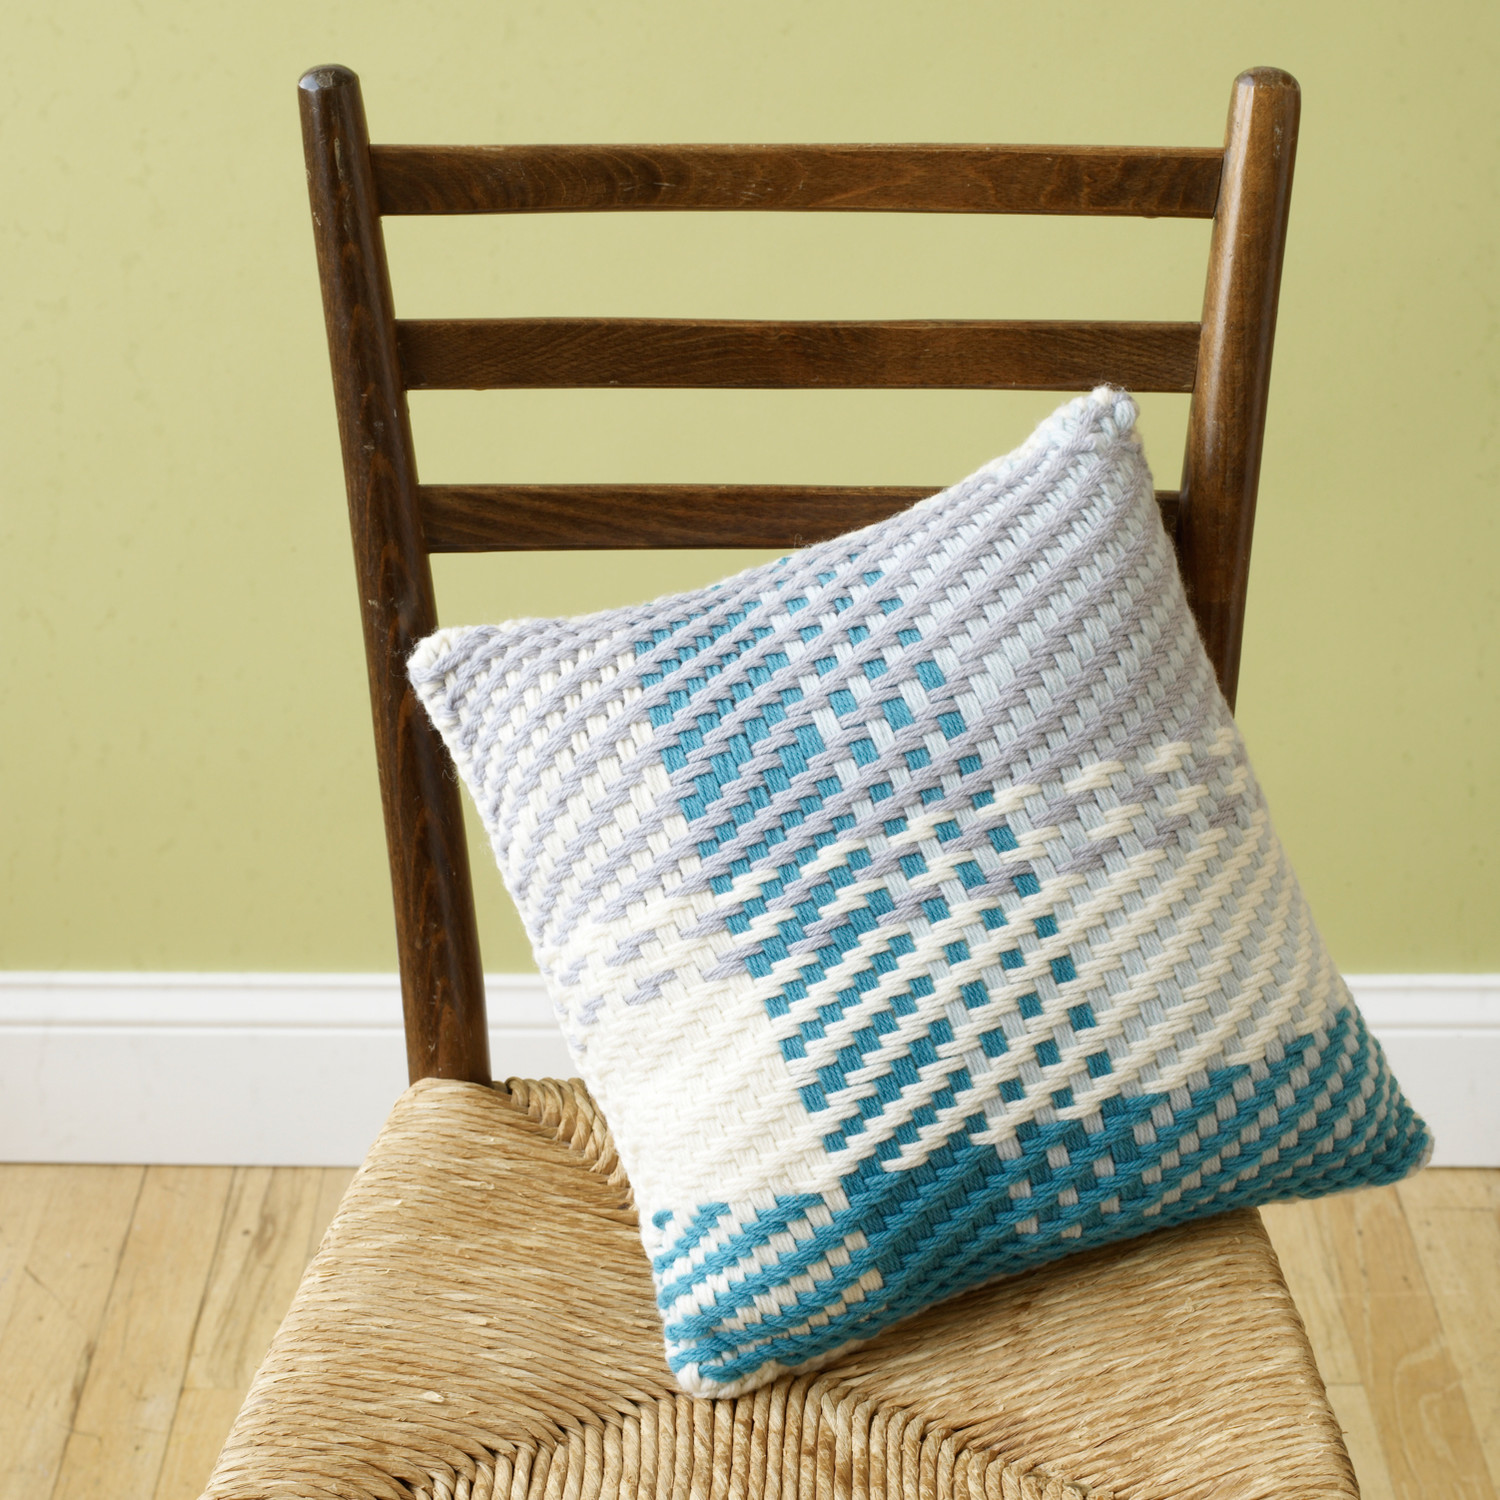 4 Weaving Crafts We Are Over The Loom About Martha Stewart